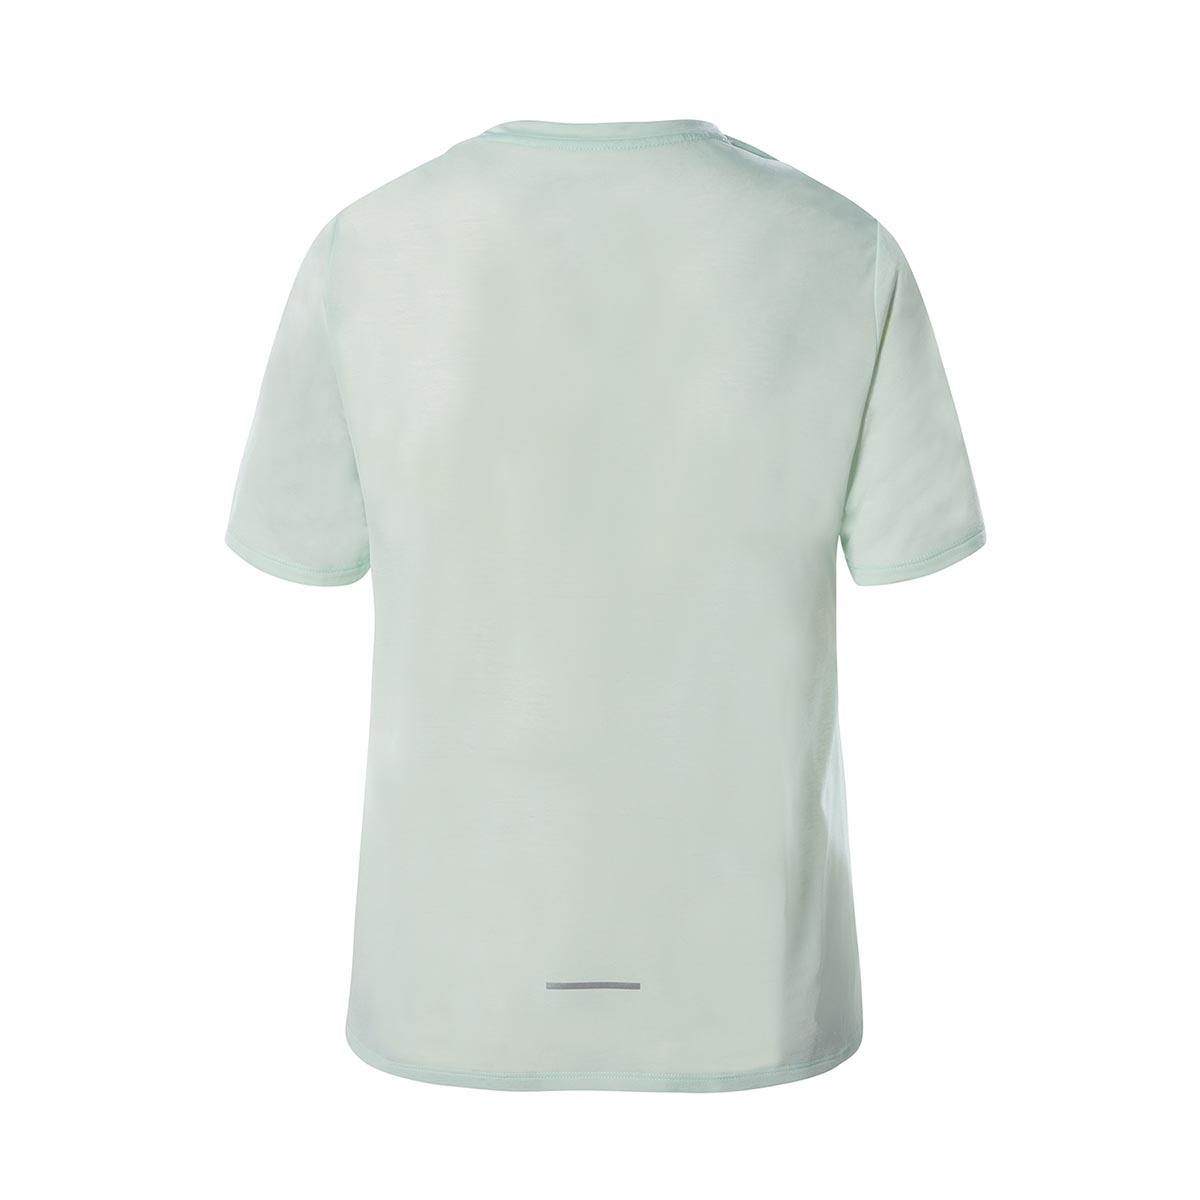 THE NORTH FACE - UP WITH THE SUN T-SHIRT